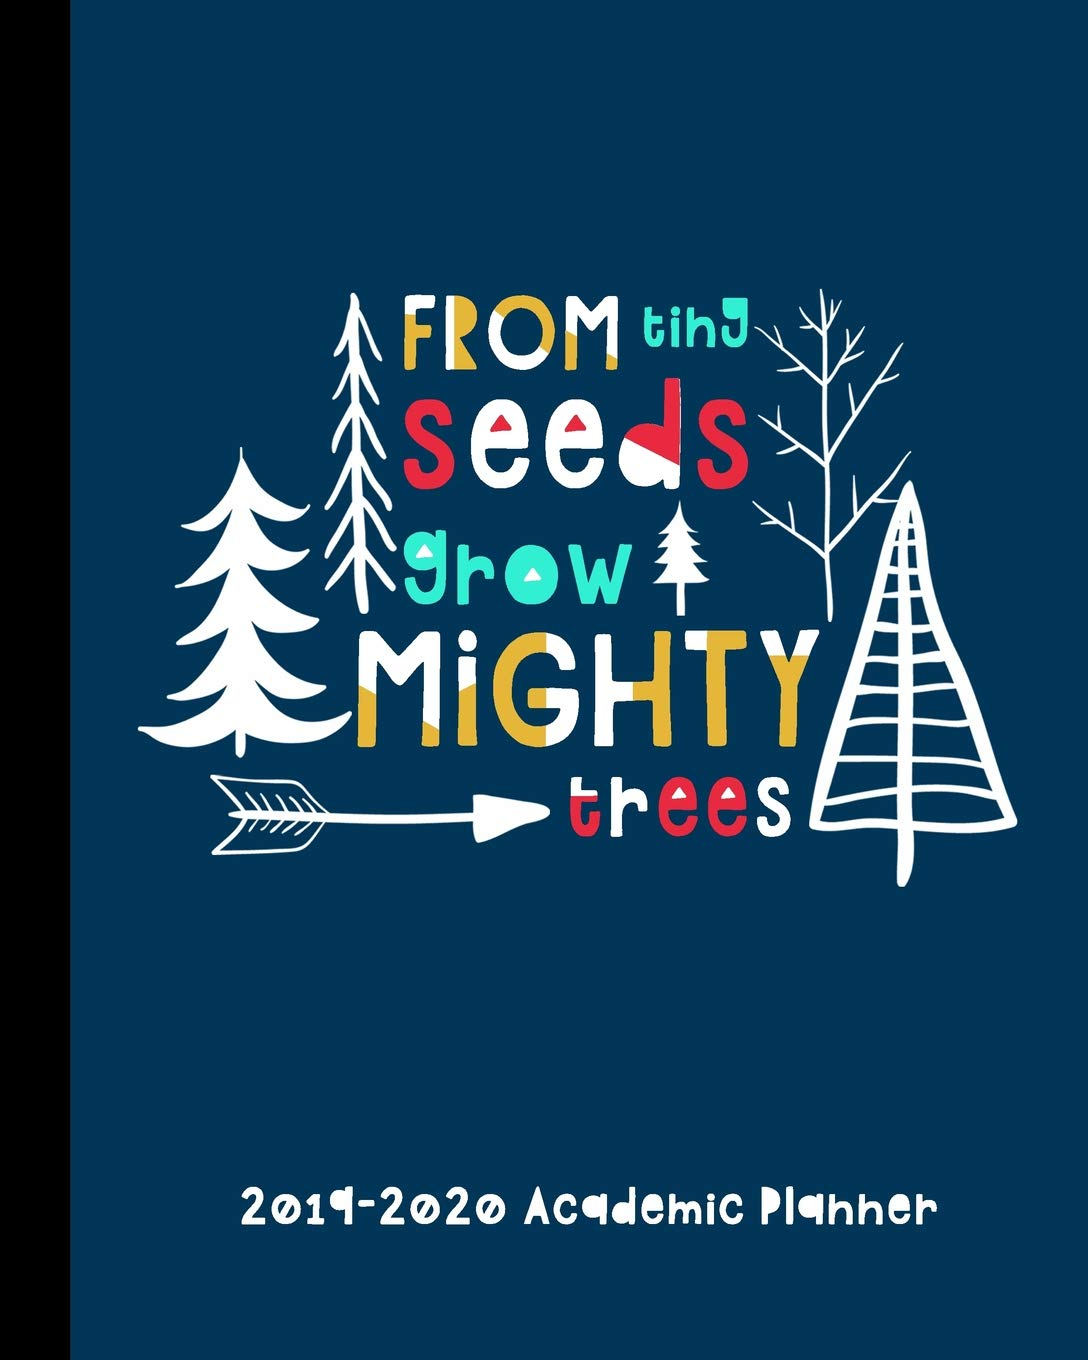 Academic Calendar For 2014-2020 From Tiny Seeds Grow Mighty Trees 2019 2020 Academic Planner: A